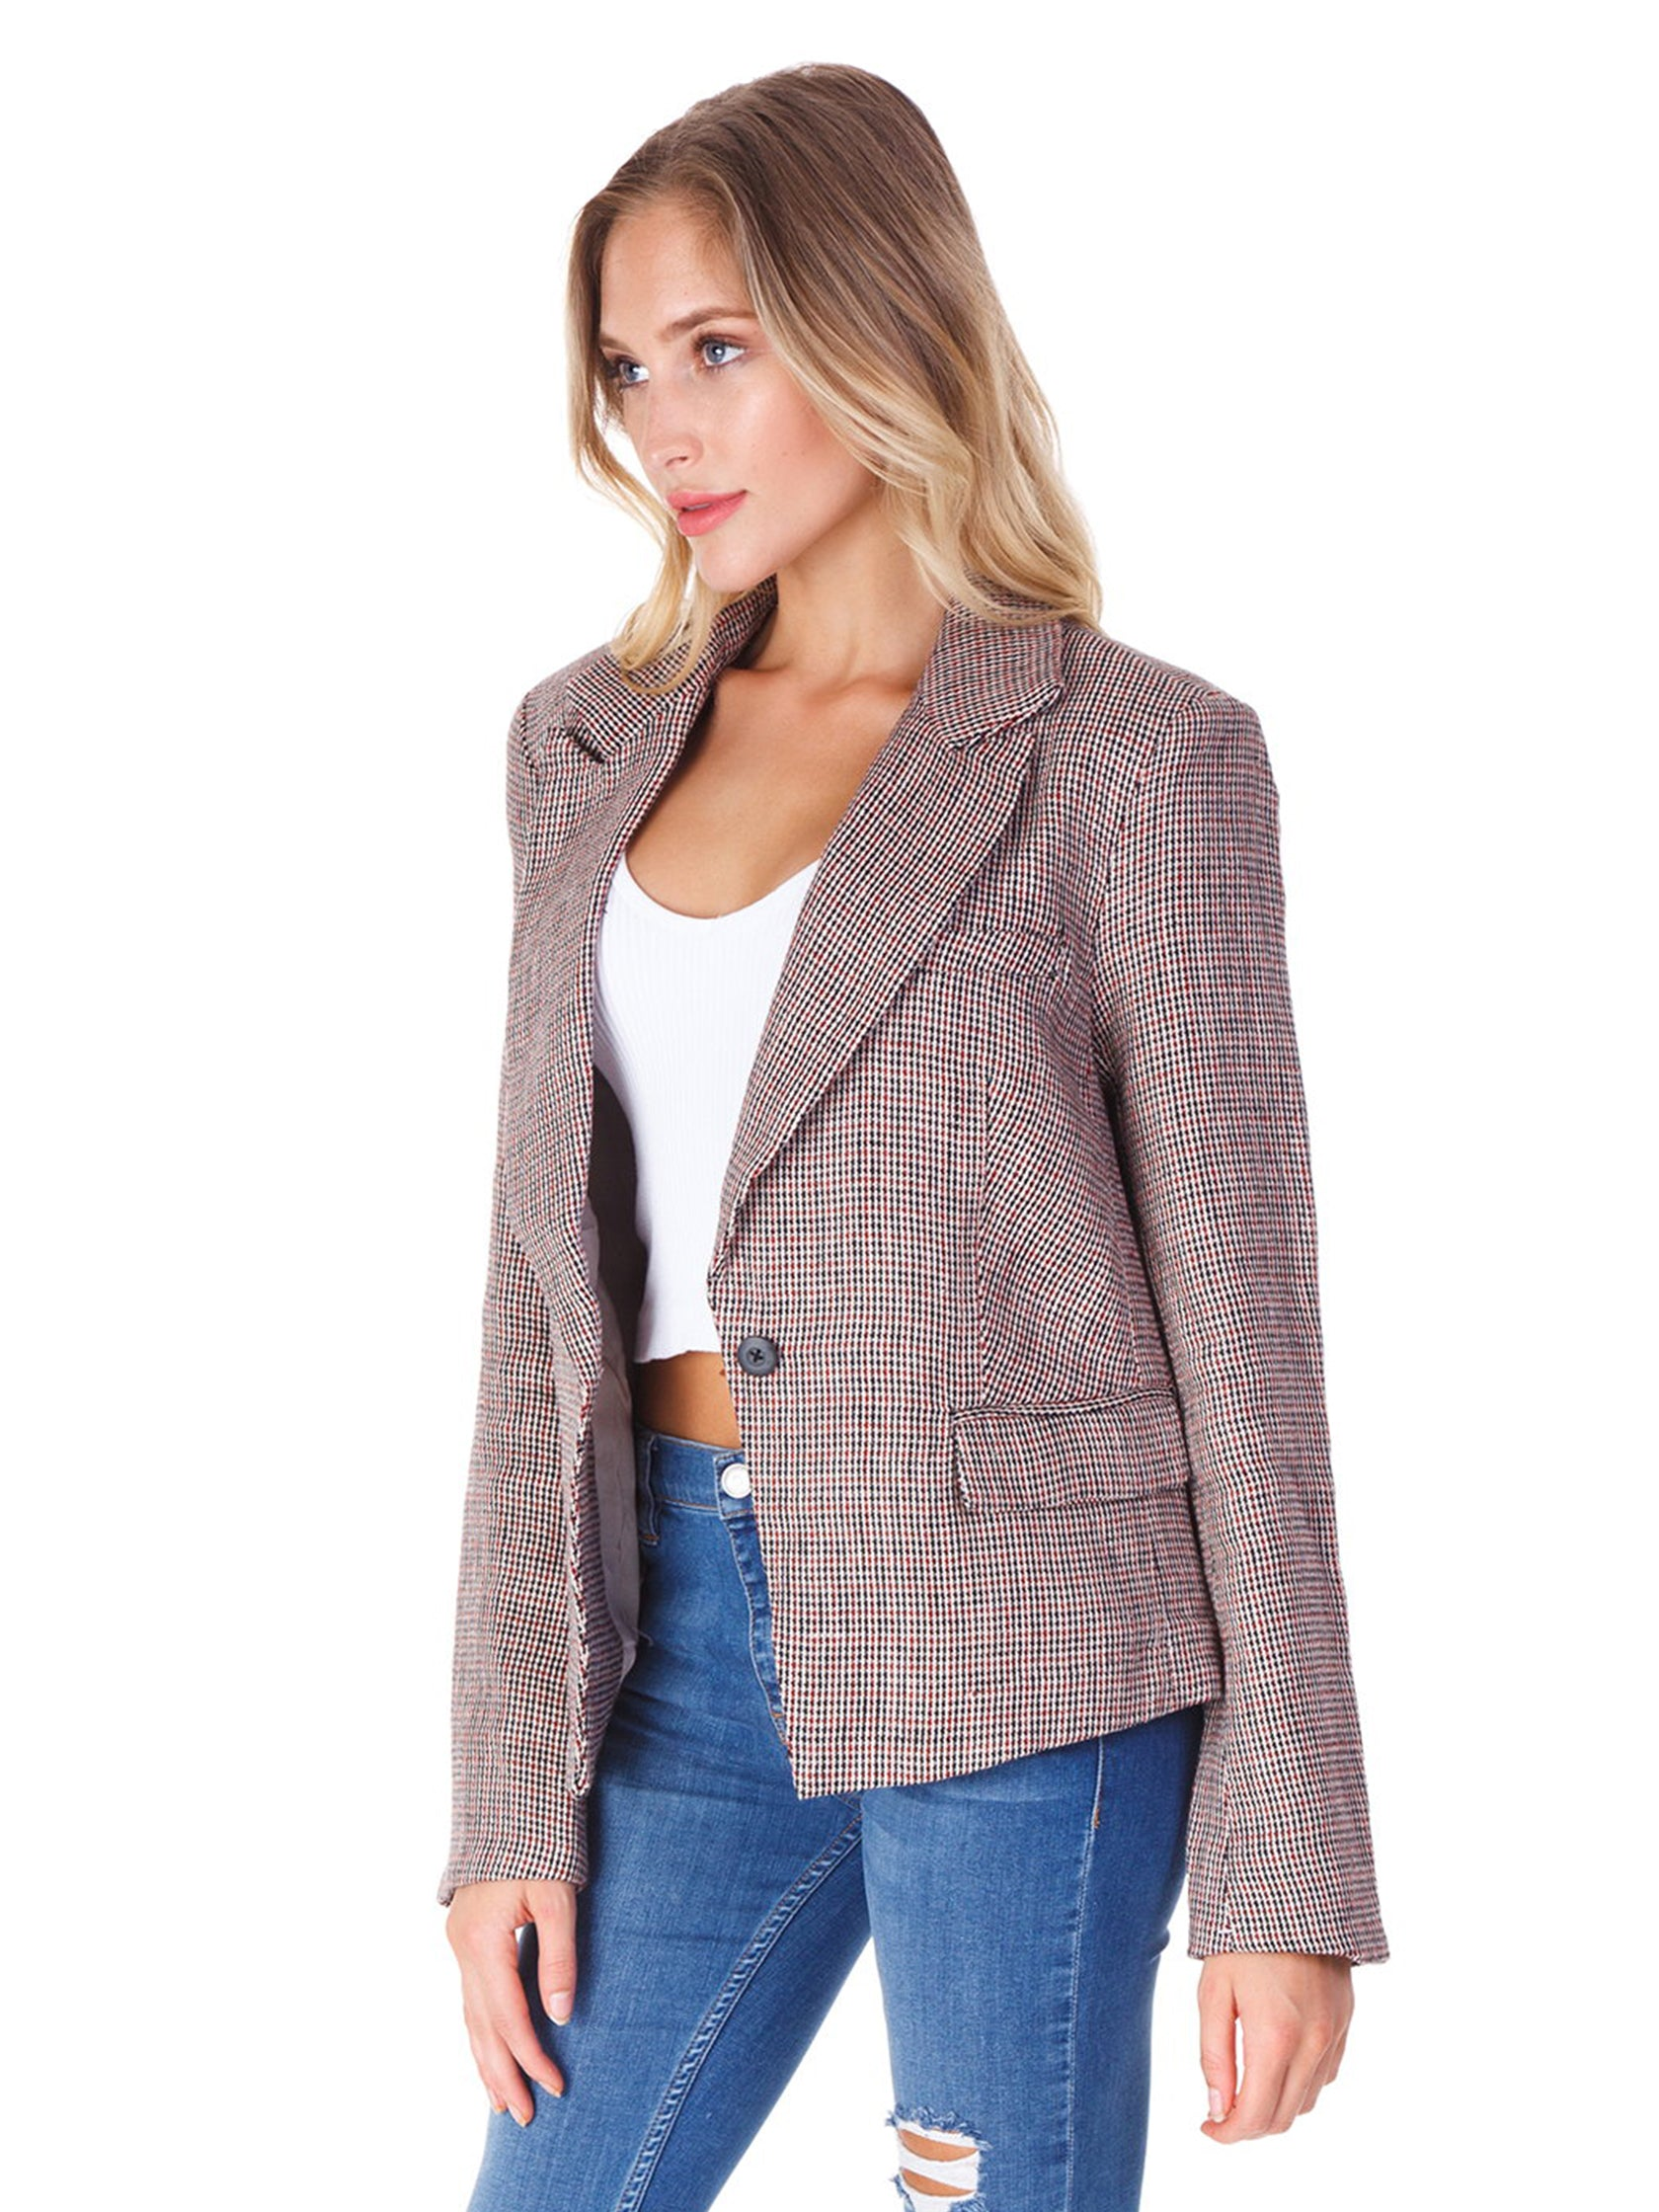 Women wearing a blazer rental from Free People called Chess Blazer